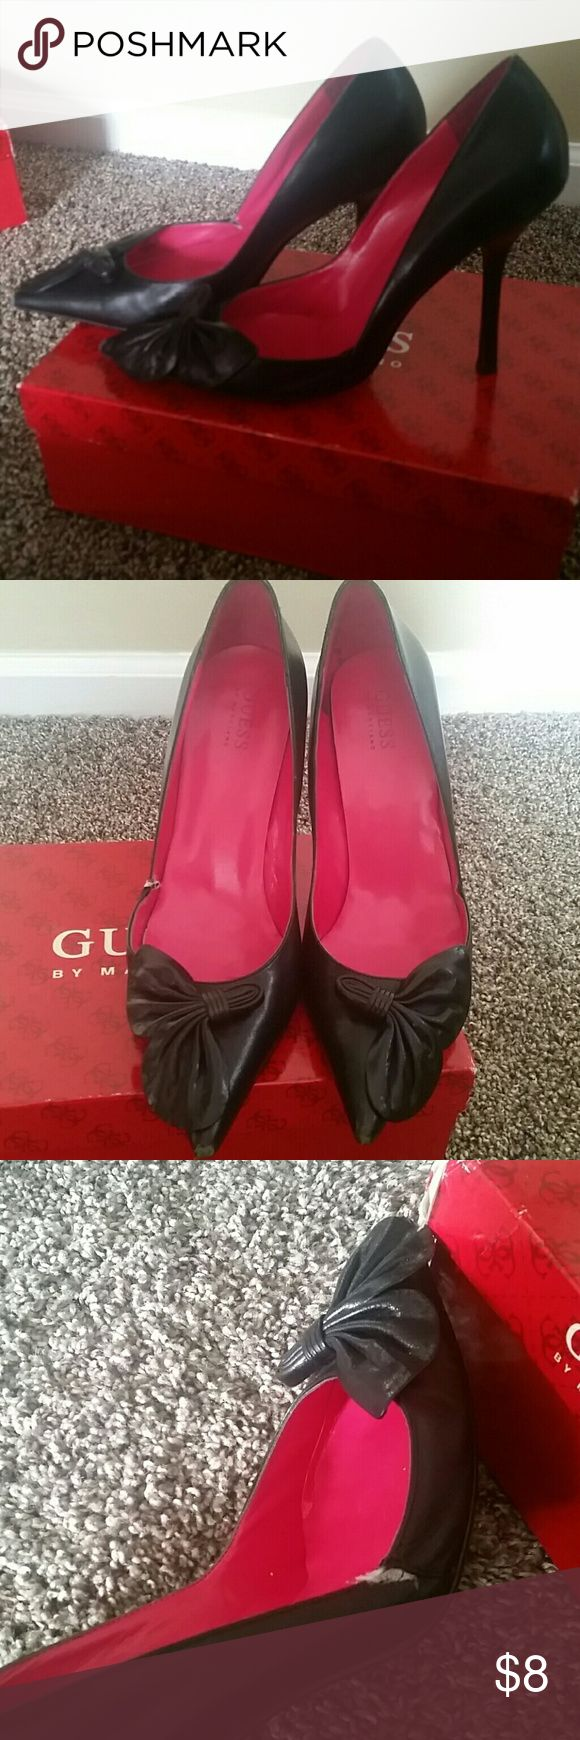 Guess by Marciano Heels Guess by Marciano black leather stiletto pumps with a small tear at the seam, shown in picture. Can easily be stitched. Price adjusted accordingly. Guess by Marciano Shoes Heels